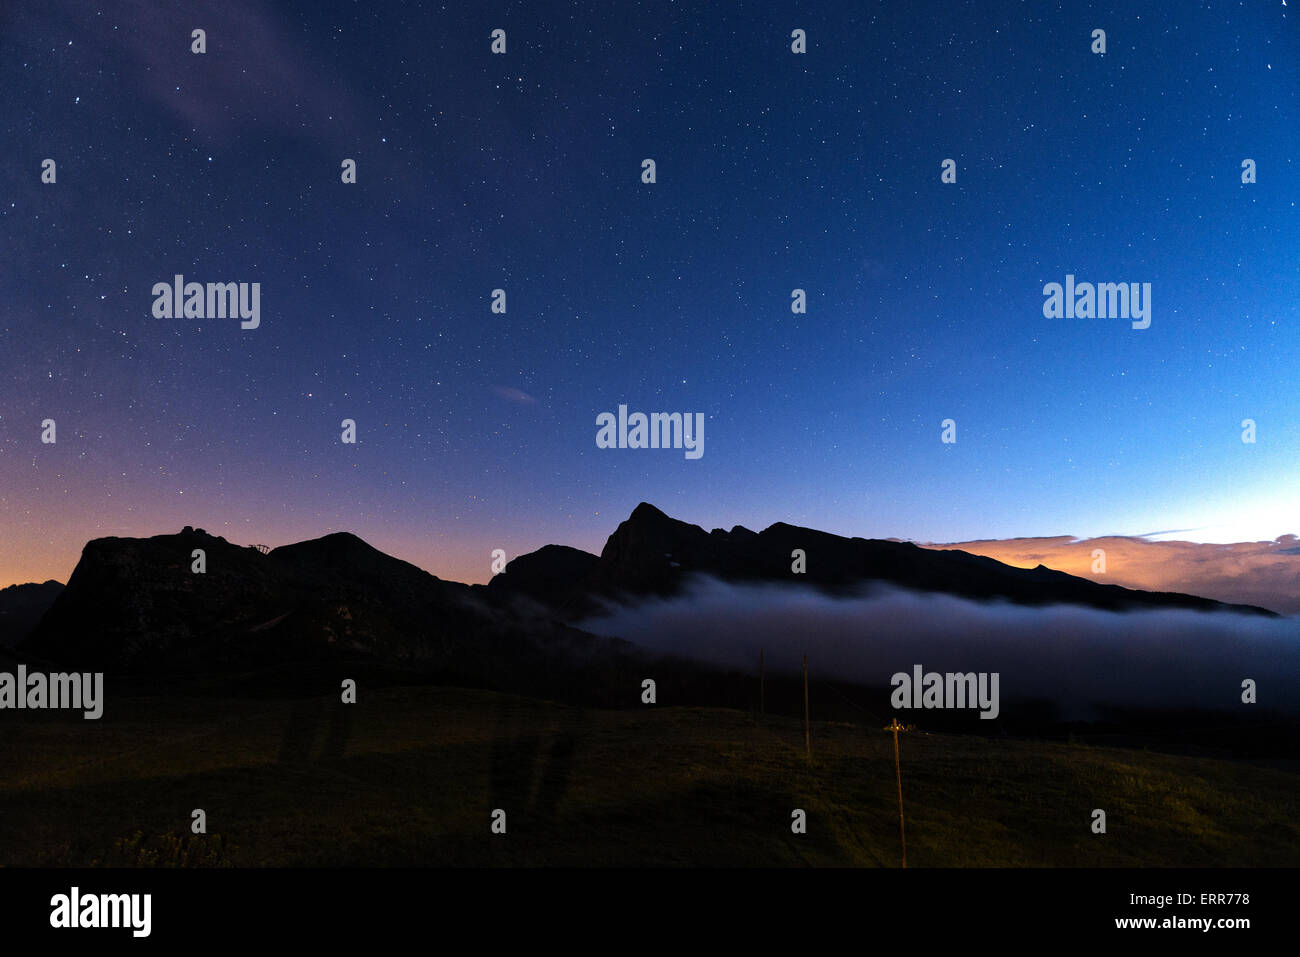 evening at the Rolle pass with fog on the mountains and blue sky with stars background, Trentino - Italy - Stock Image